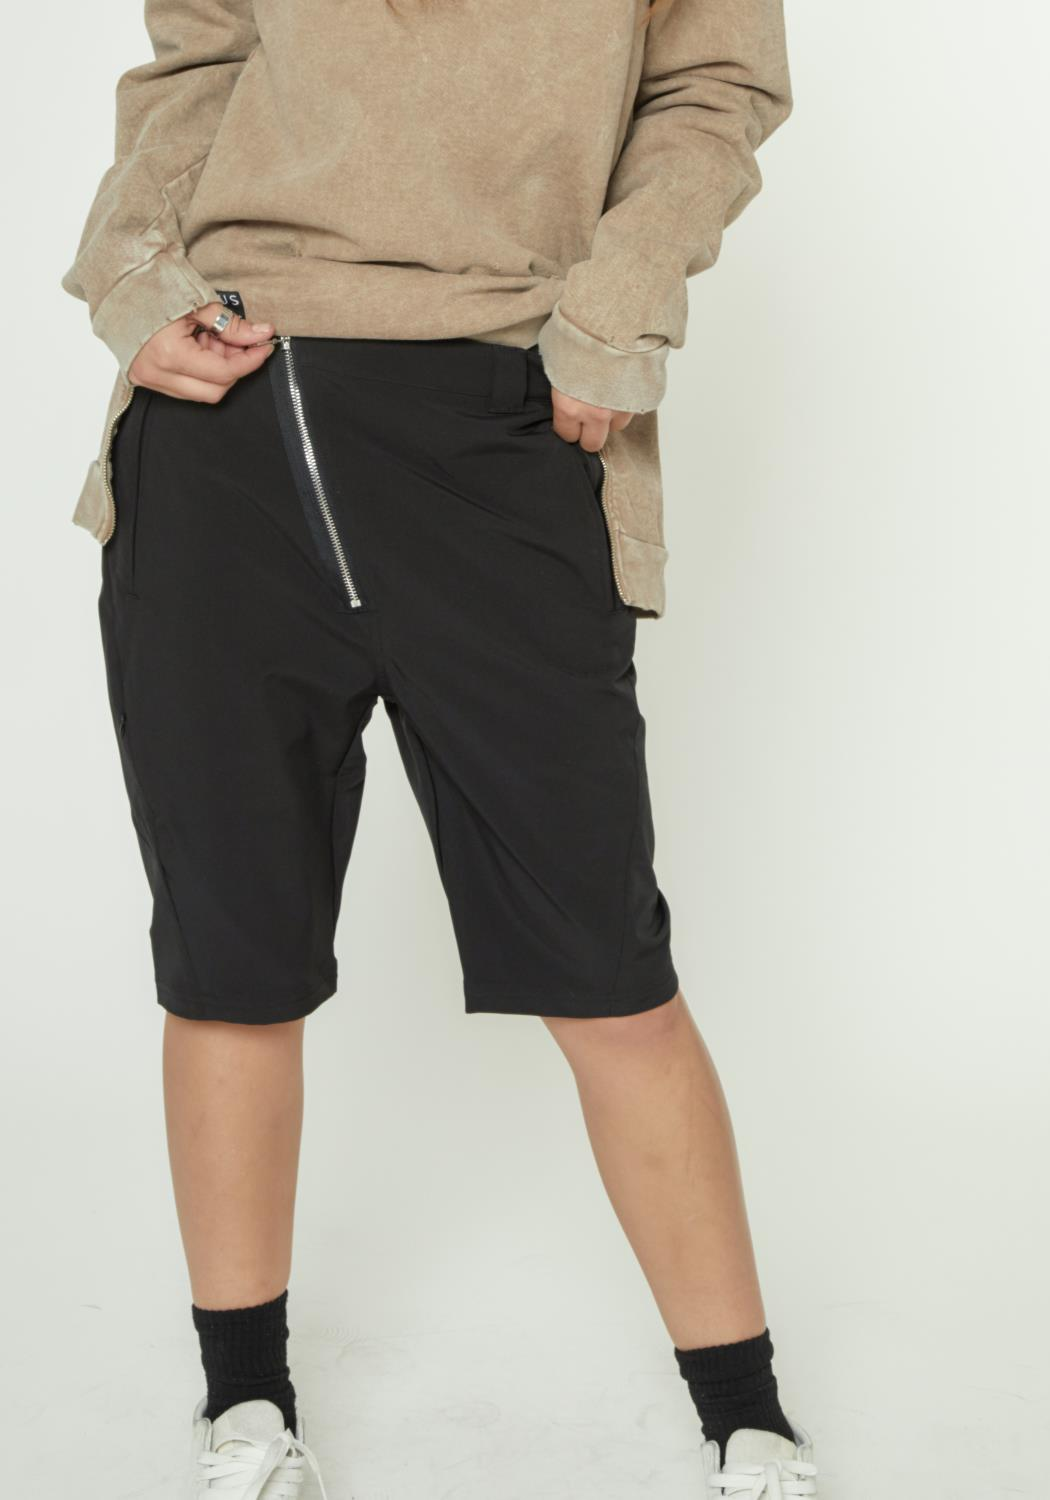 SHORTS WITH ASYMMETRICAL ZIPPER FLY